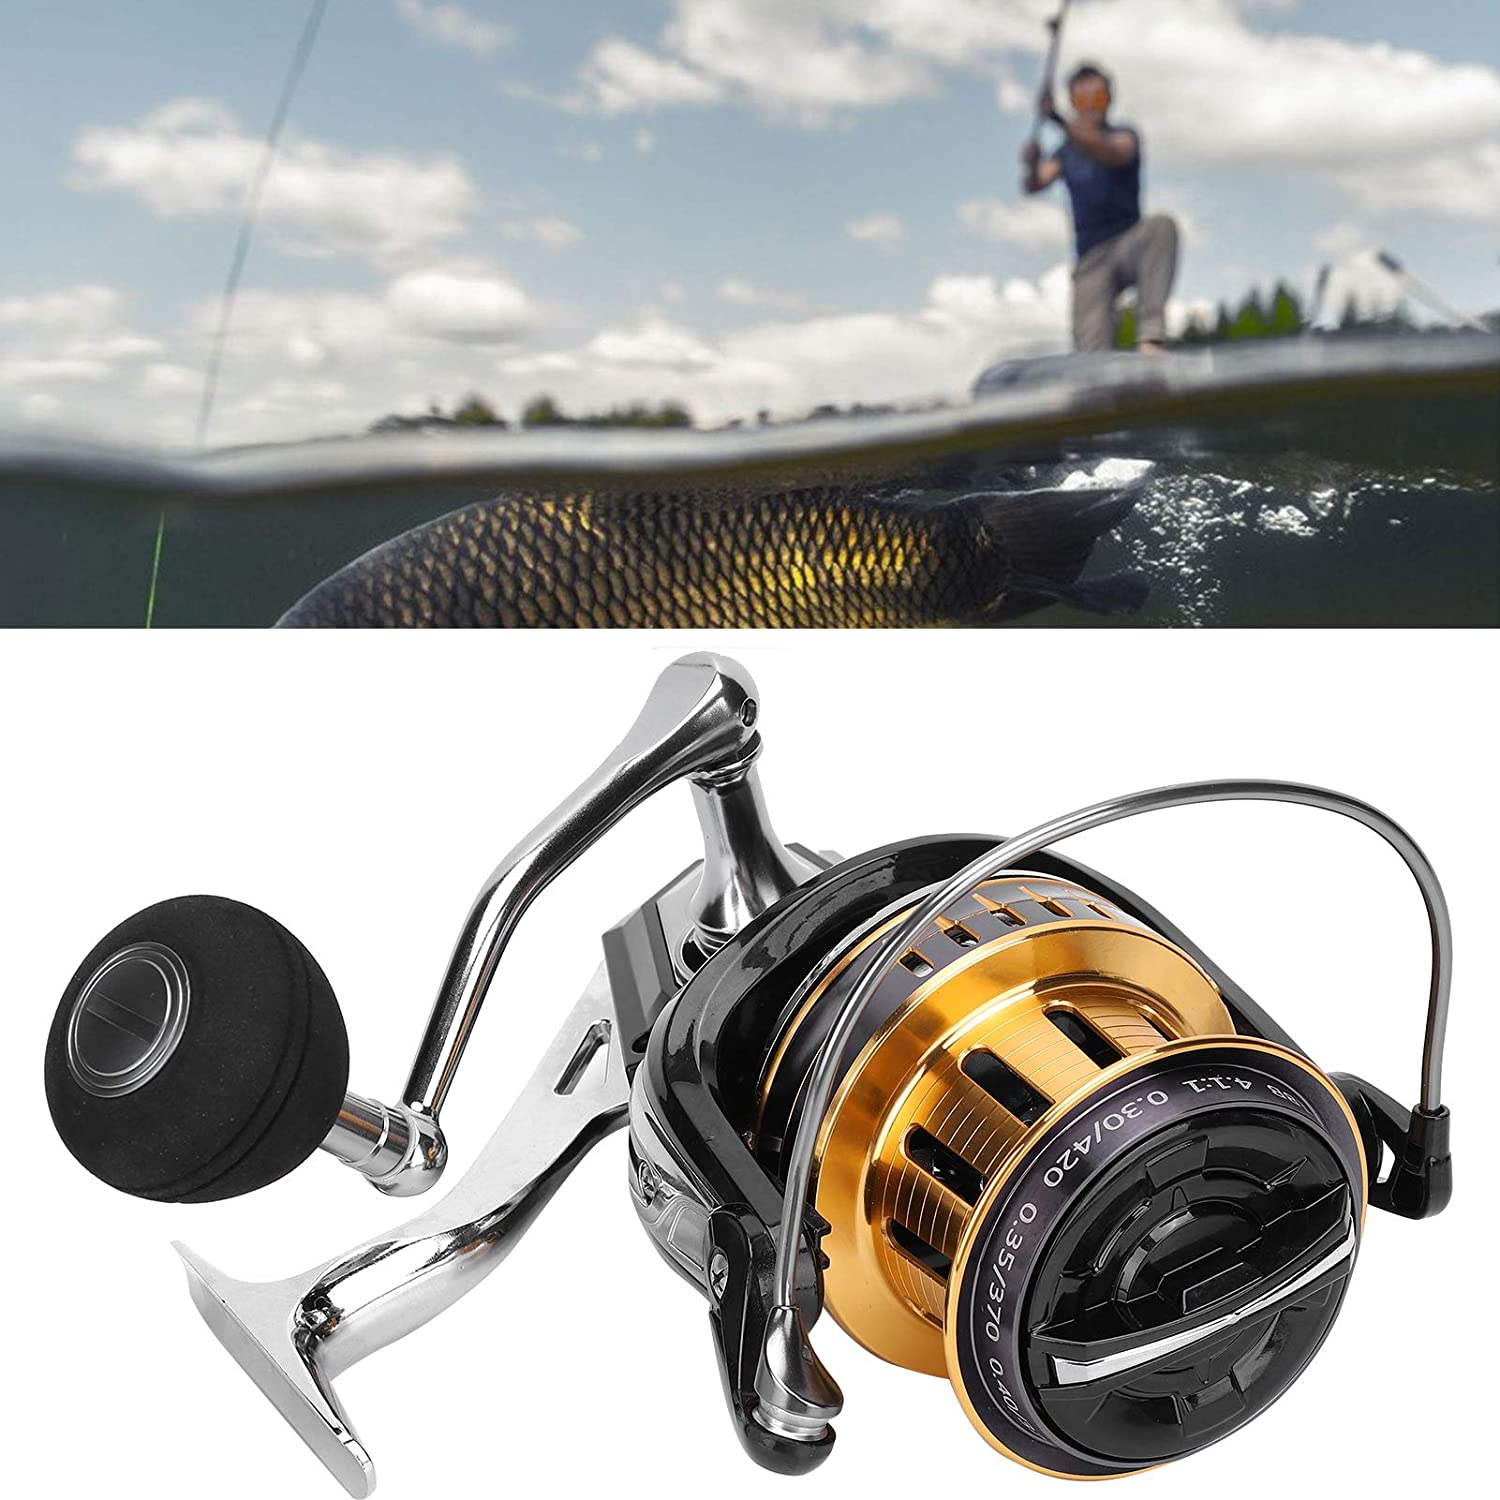 Raleigh Mall 5+1 BB Fishing Reel Far Animer and price revision Wheel Fisherme for Throw